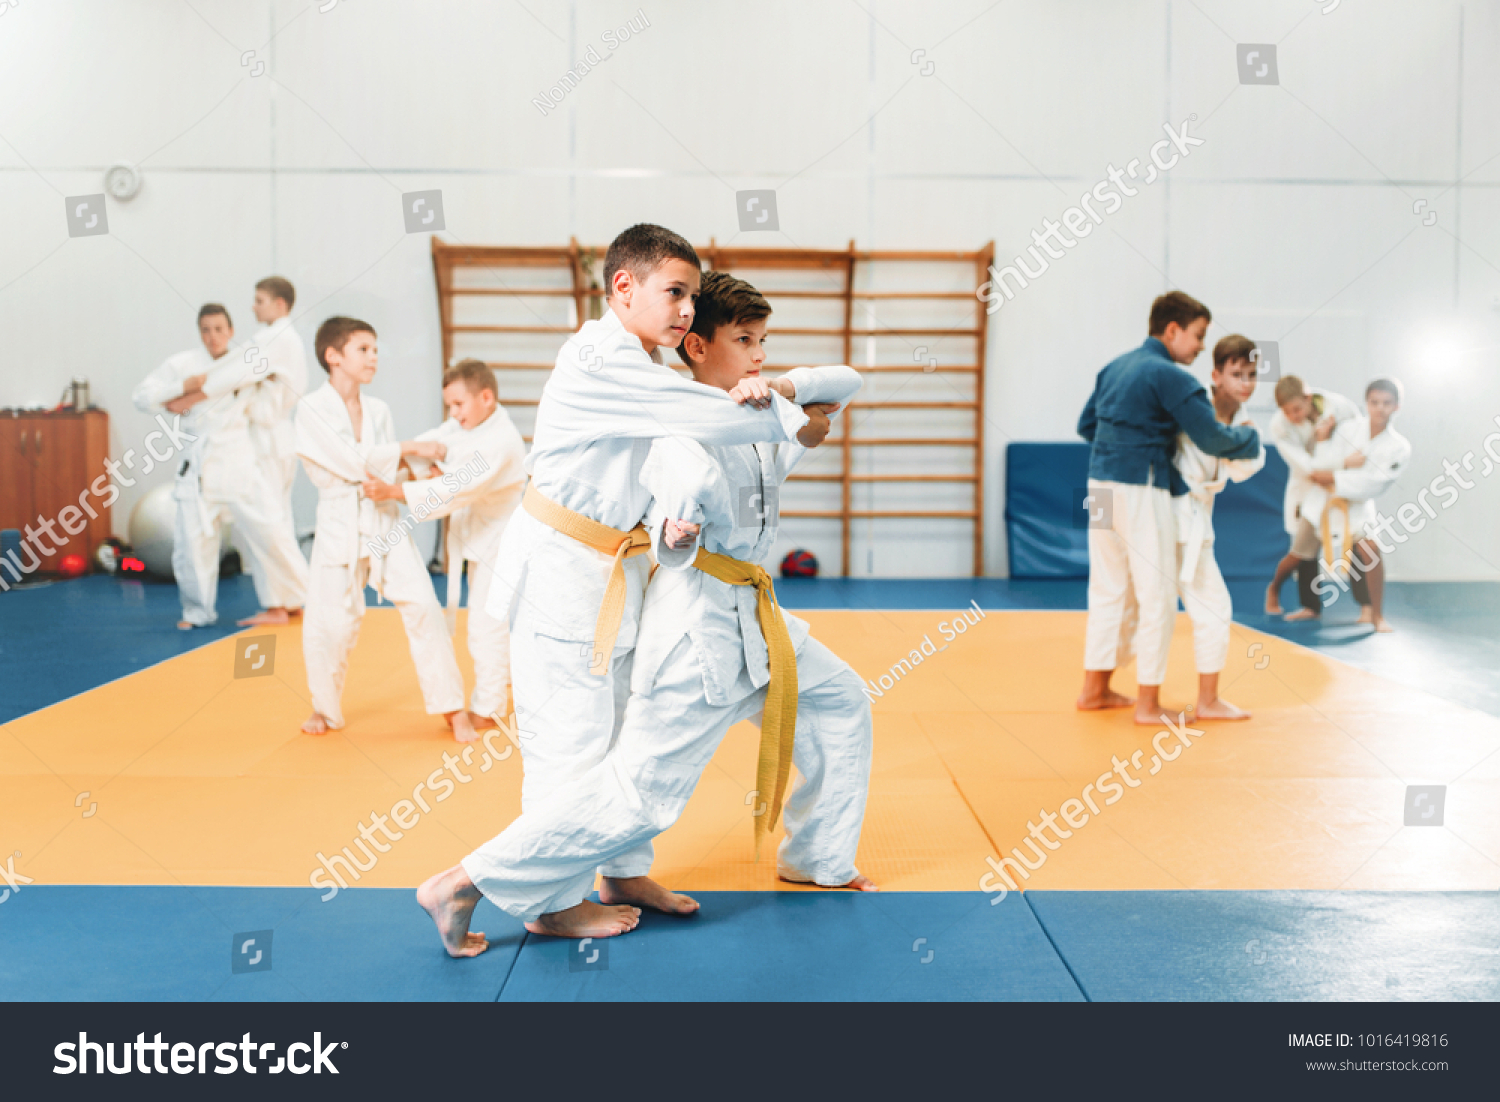 Kid judo, childrens training martial art in hall #1016419816